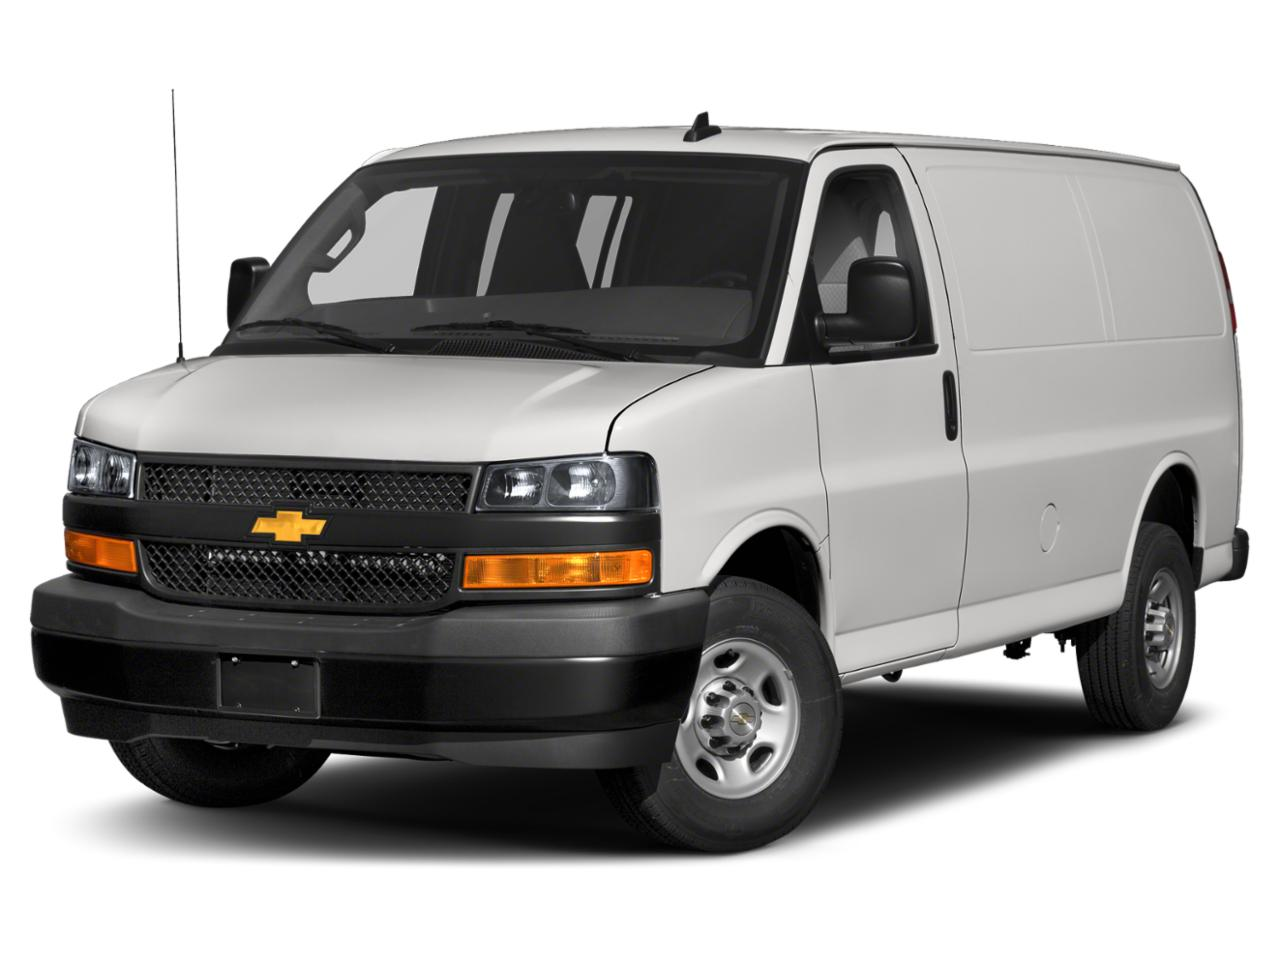 2021 Chevrolet Express Cargo Van Vehicle Photo in Washington, NJ 07882